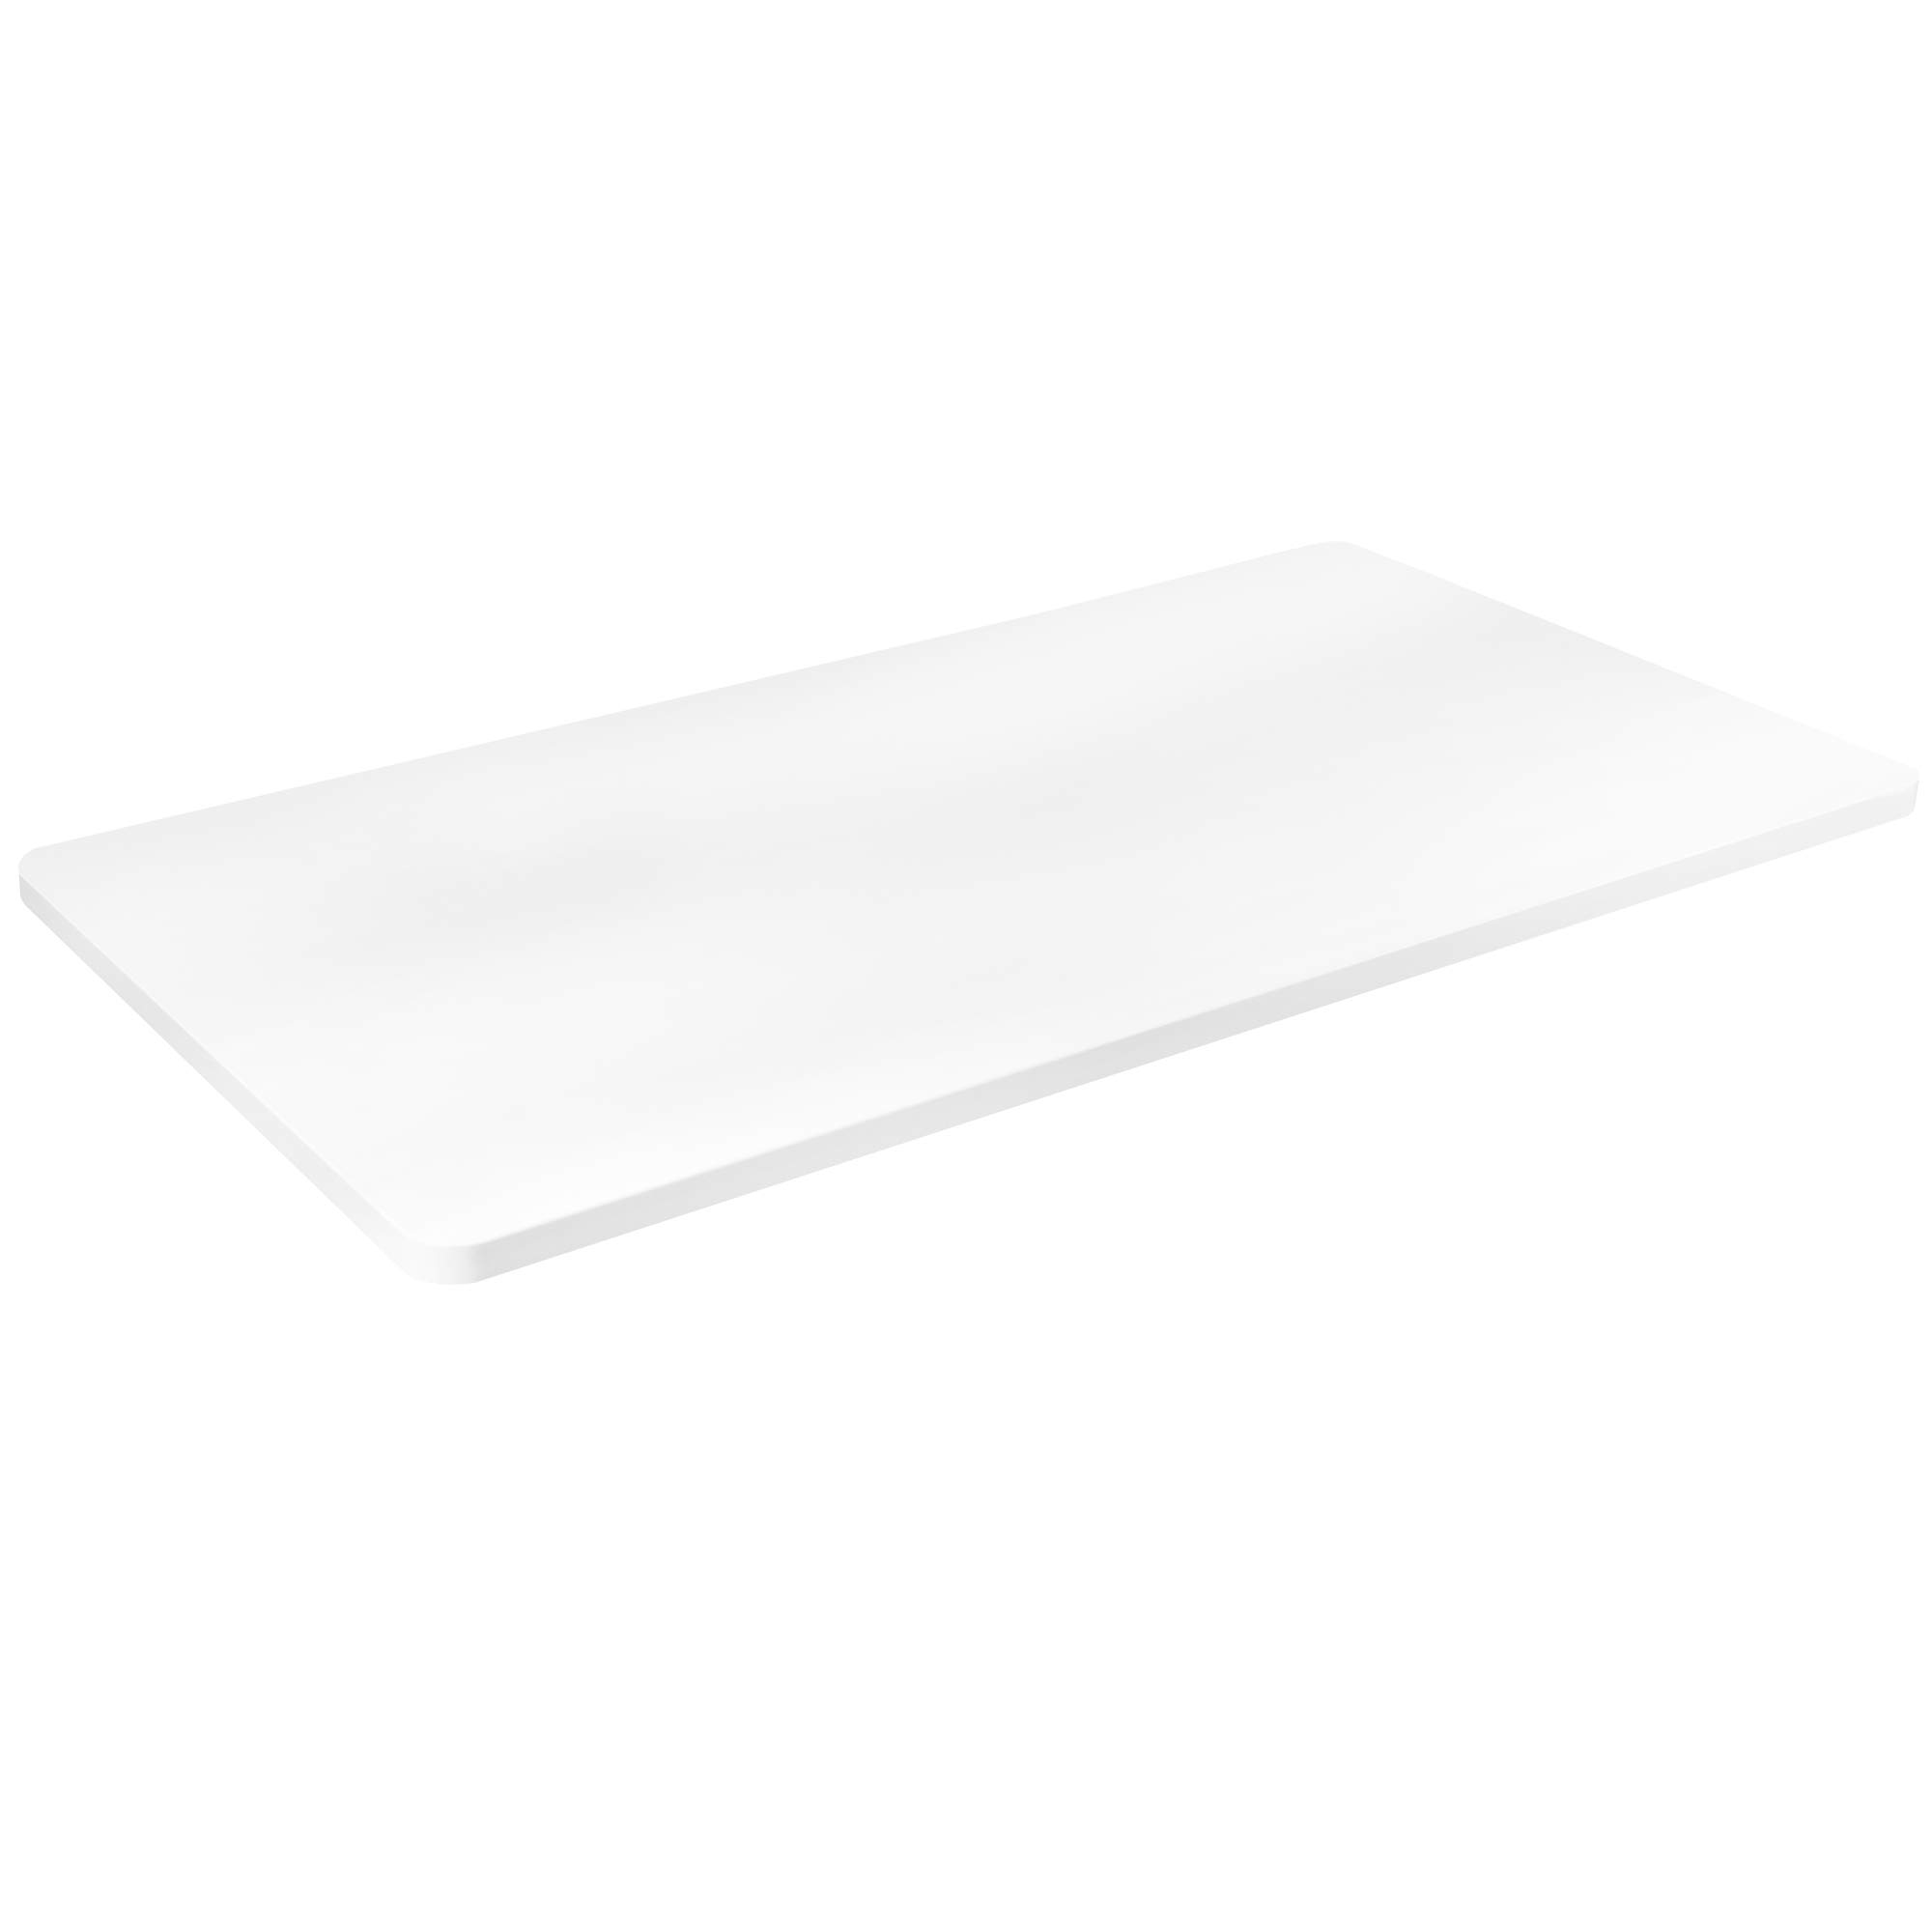 VIVO White 43 x 24 inch Universal Table Top for Standard and Sit to Stand Height Adjustable Home and Office Desk Frames (DESK-TOP43W) by VIVO